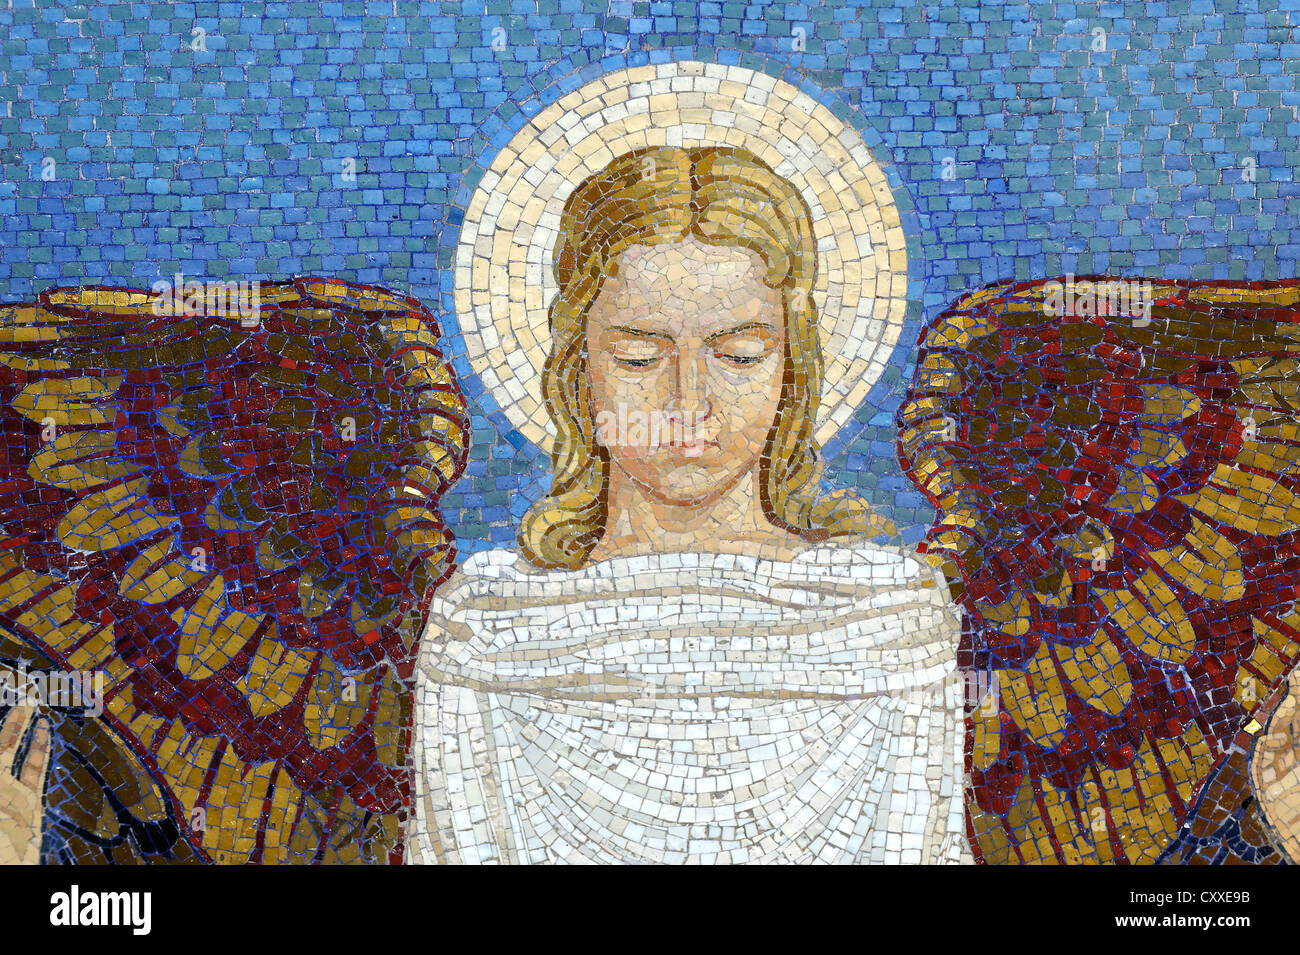 Angel, wall mosaic at the Church of the Transfiguration, Mount Tabor, Galilee, Israel, Middle East - Stock Image